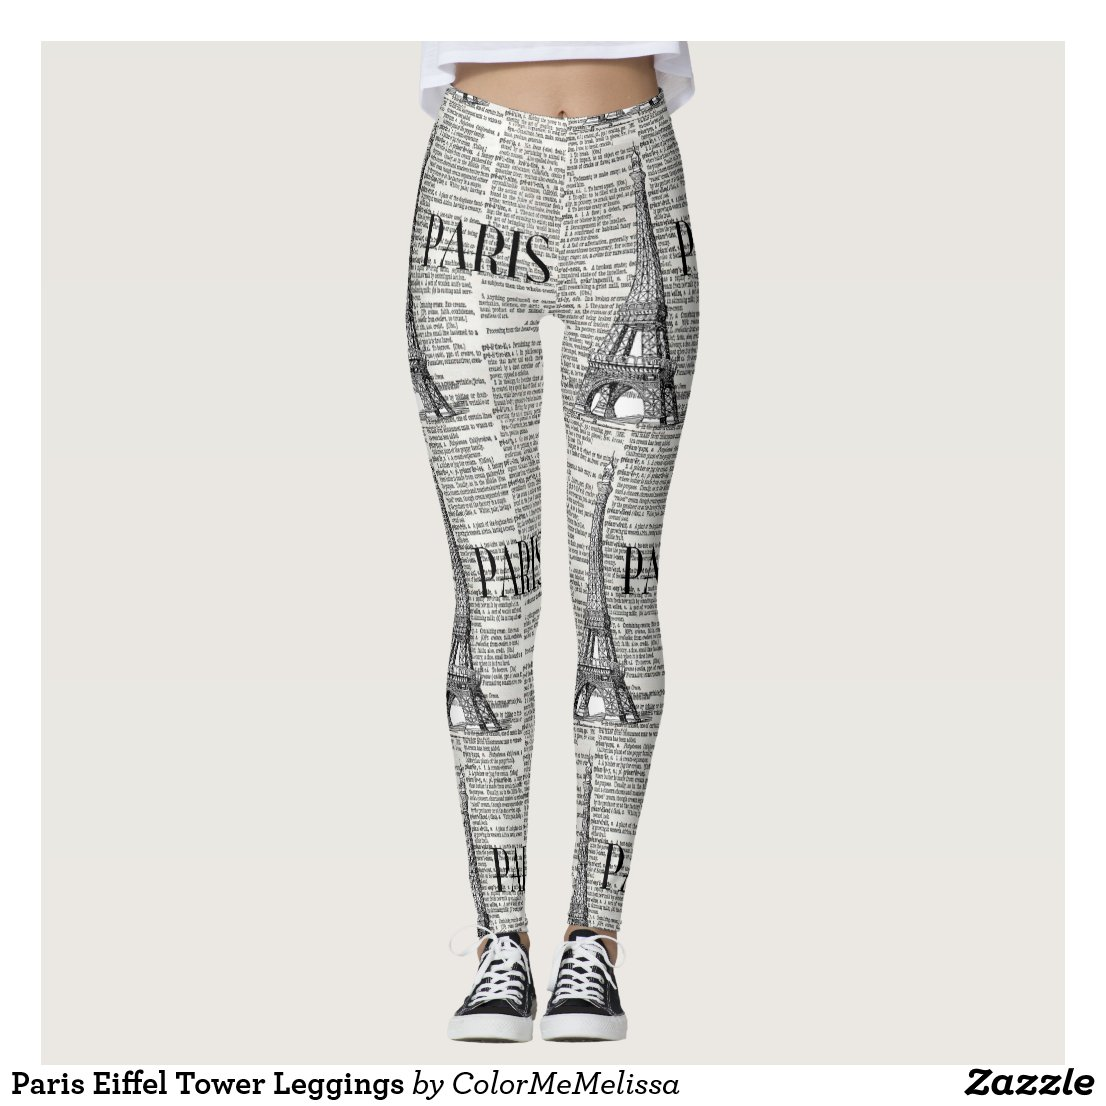 Paris Eiffel Tower Leggings